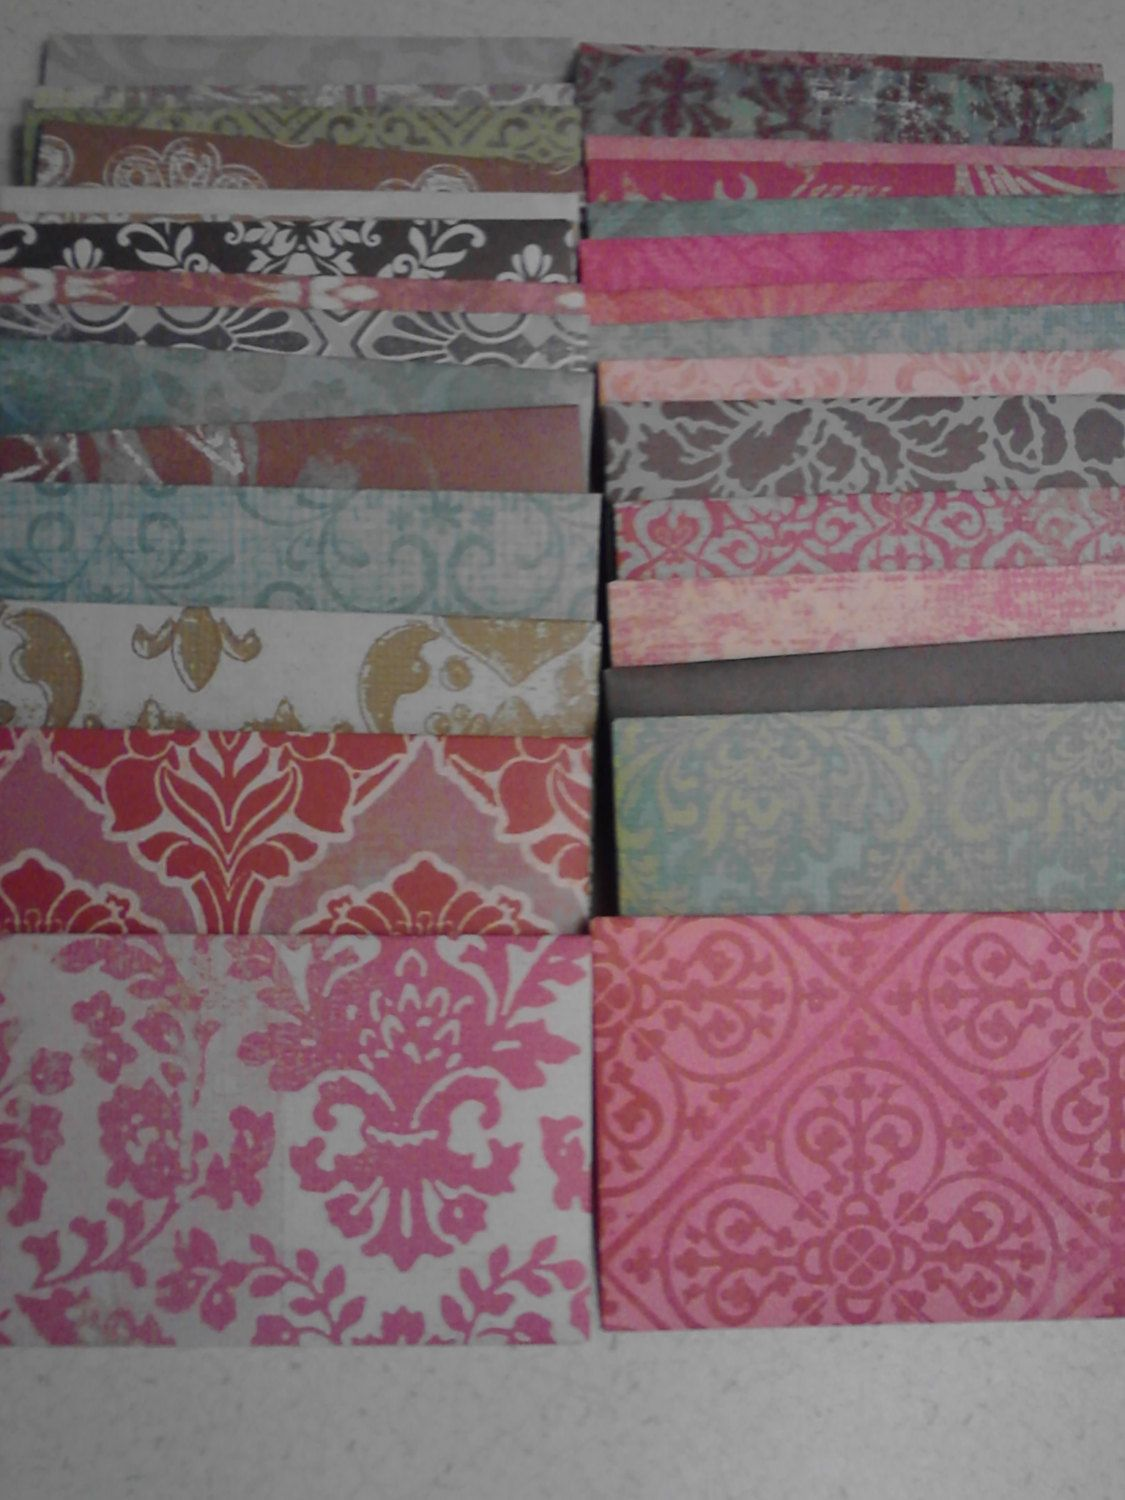 Damask gift card envelopes business card envelopes handmade damask gift card envelopes business card envelopes handmade envelope trios treasure paper pattern small valentines day colourmoves